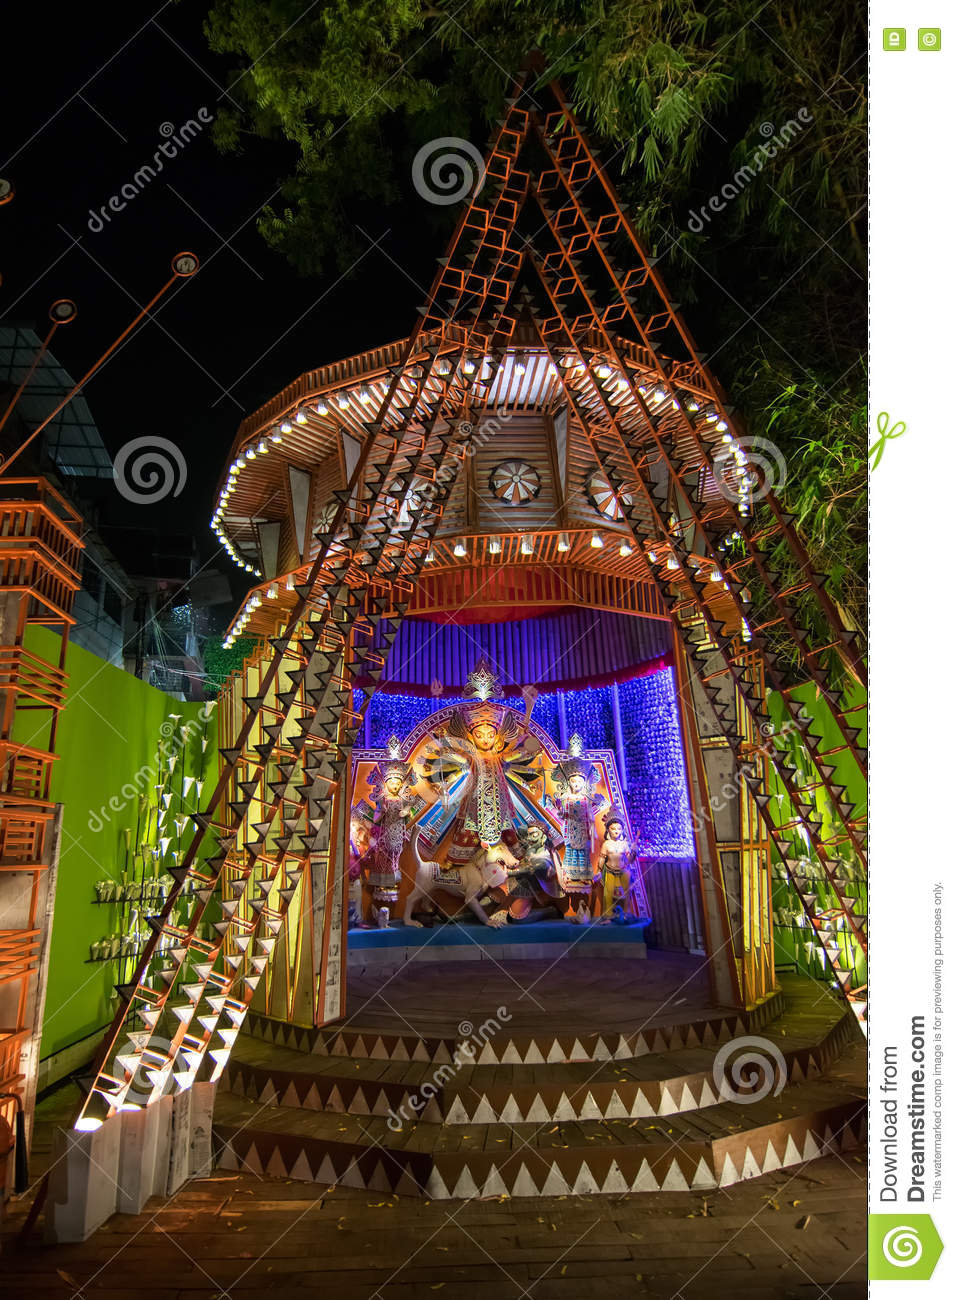 Night image of durga puja pandal kolkata west bengal india night image of durga puja pandal kolkata west bengal india color celebration thecheapjerseys Images